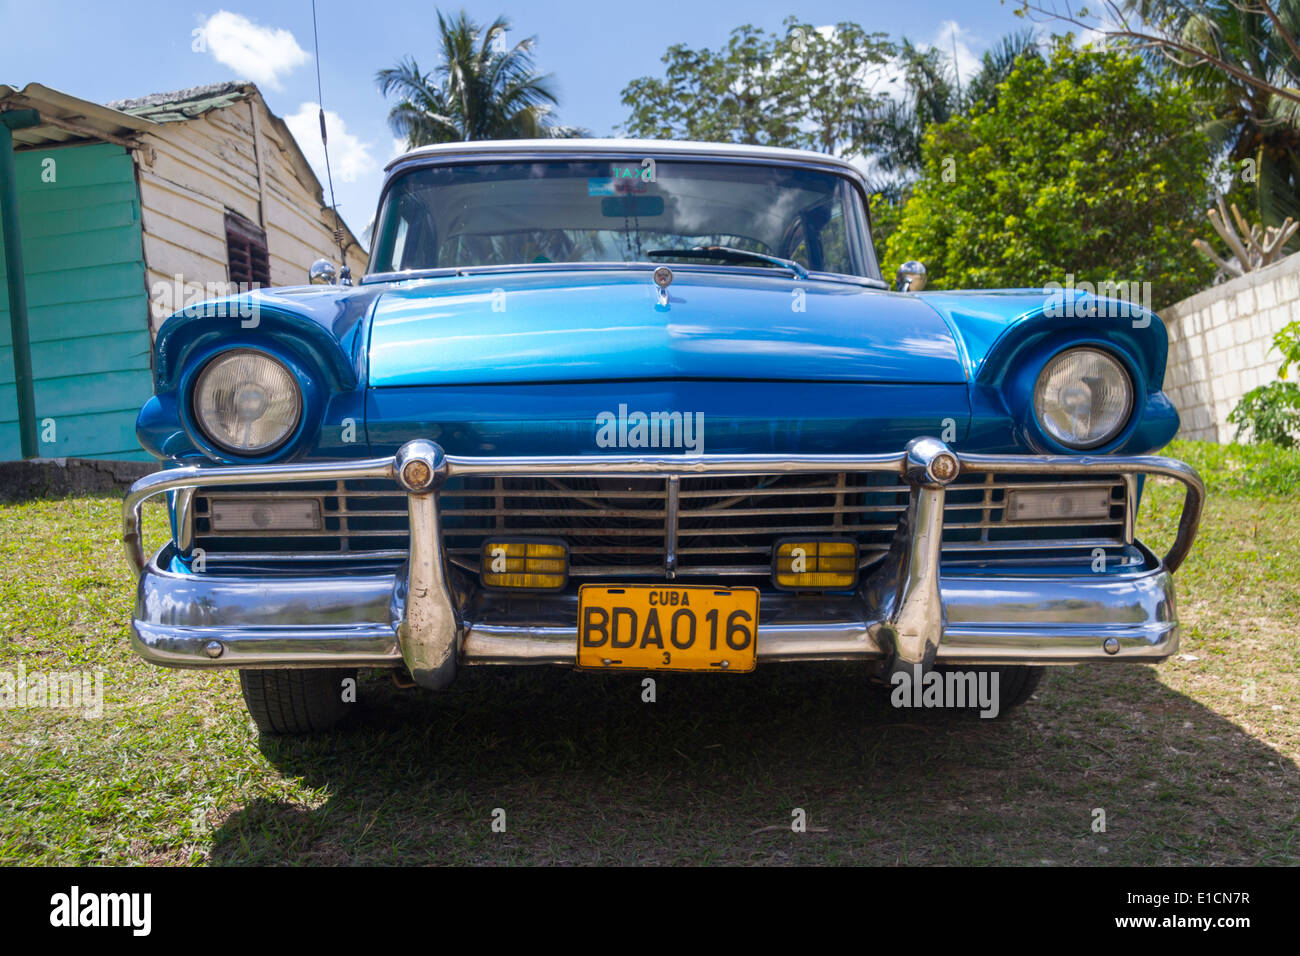 1950s Convertible Old Ford Thunderbird Classic Car In Blue In Stock Photo Alamy